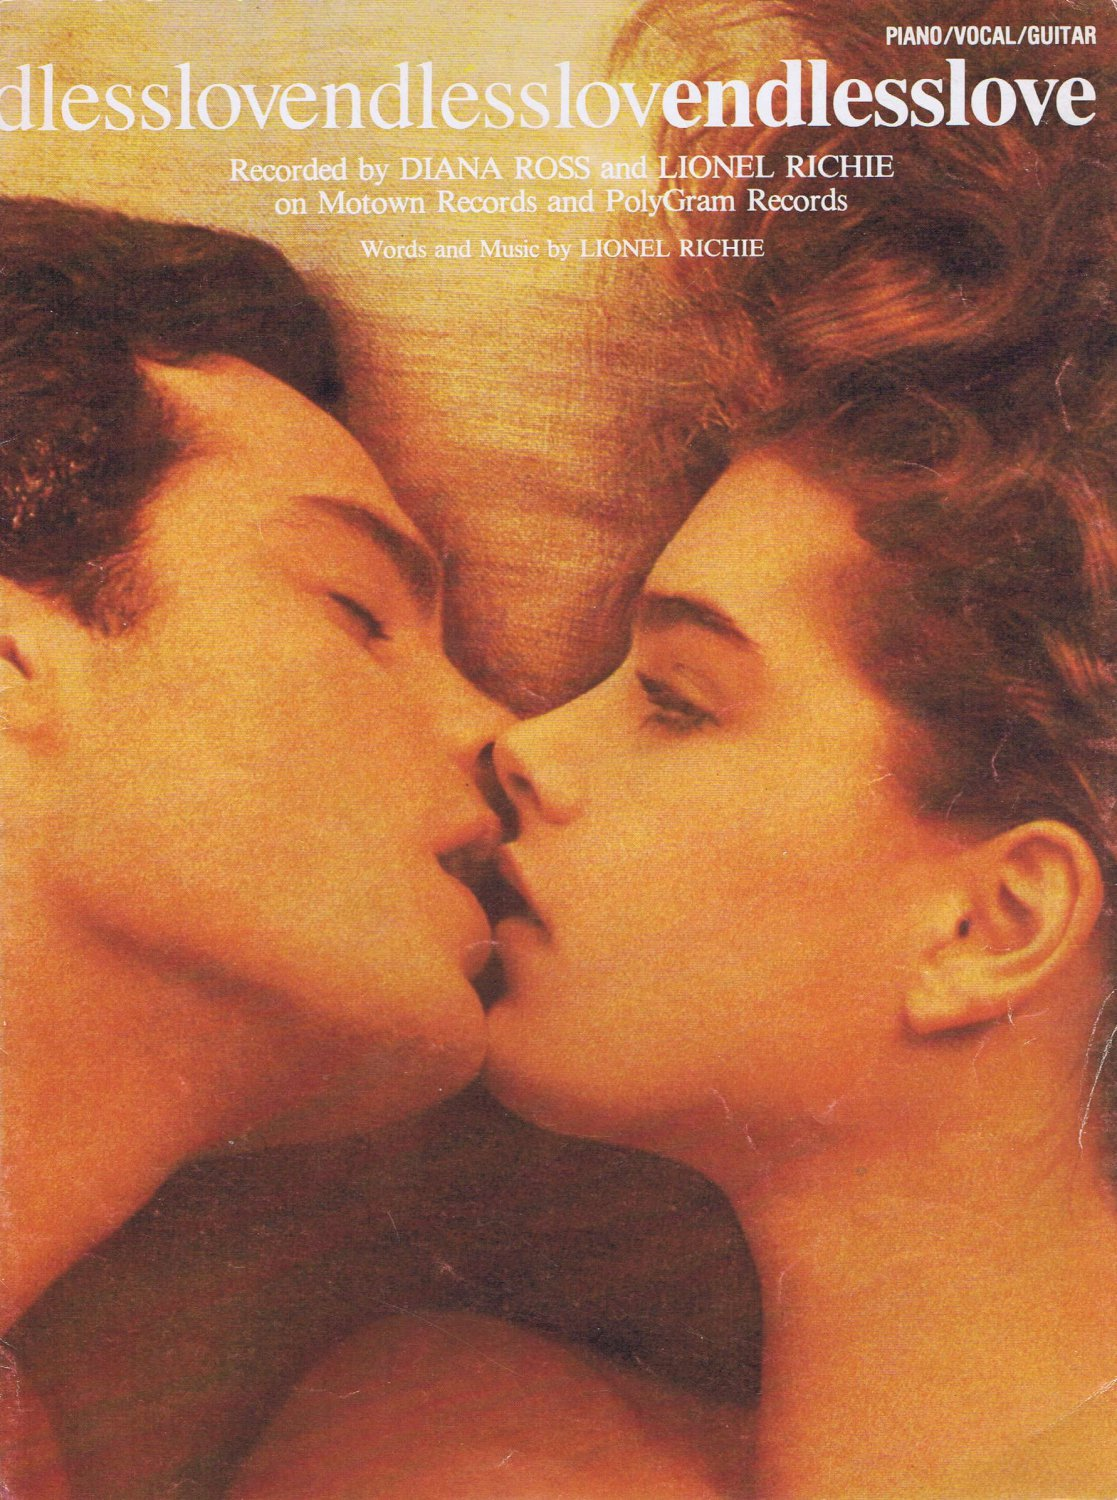 Endless Love 1981 Sheet Music by Lionel Richie with Brooke Shields Photo Cover